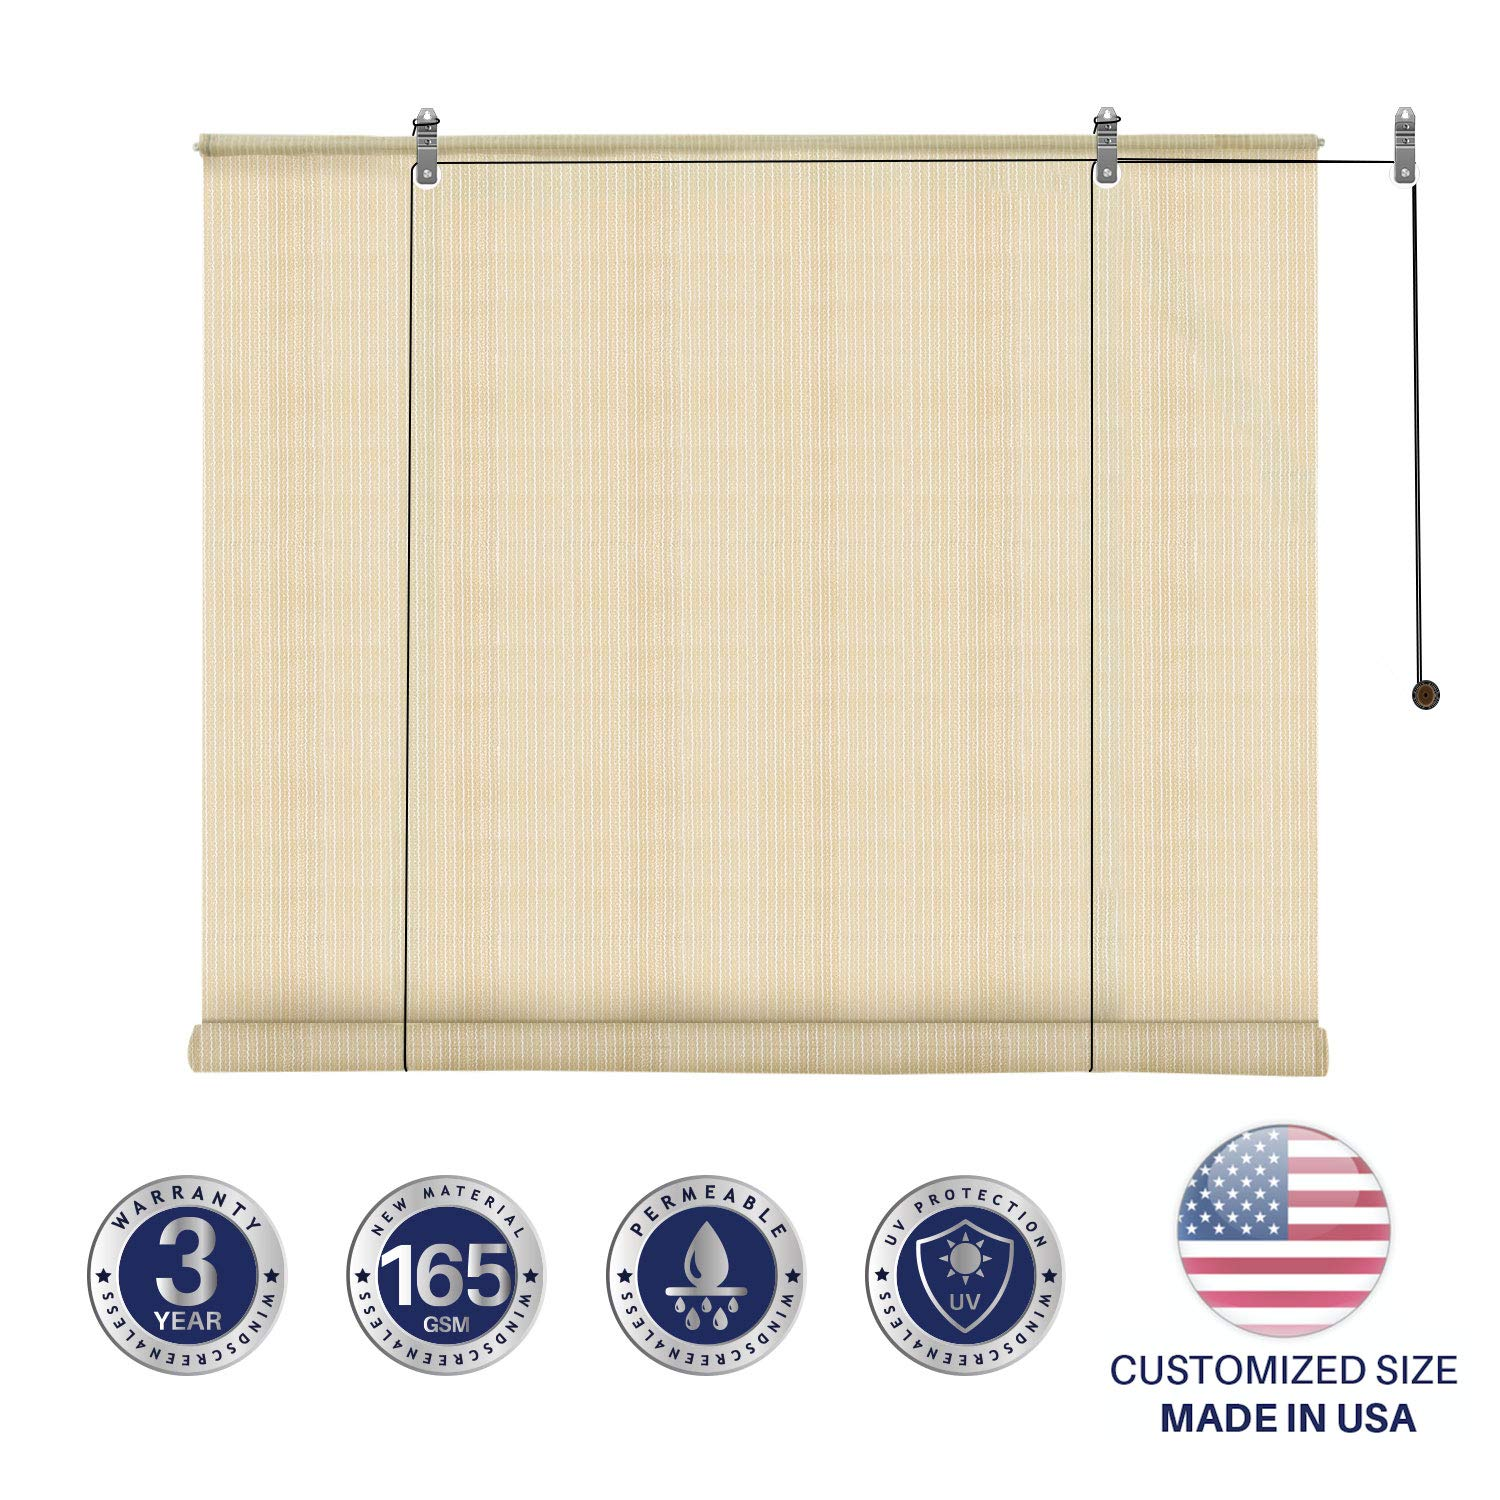 Windscreen4less Exterior Roller Shade Blinds Outdoor Roll Up Shade with 90% UV Protection Privacy for Deck Back Yard Gazebo Pergola Balcony Patio Porch Carport 7' W x 6' L Beige